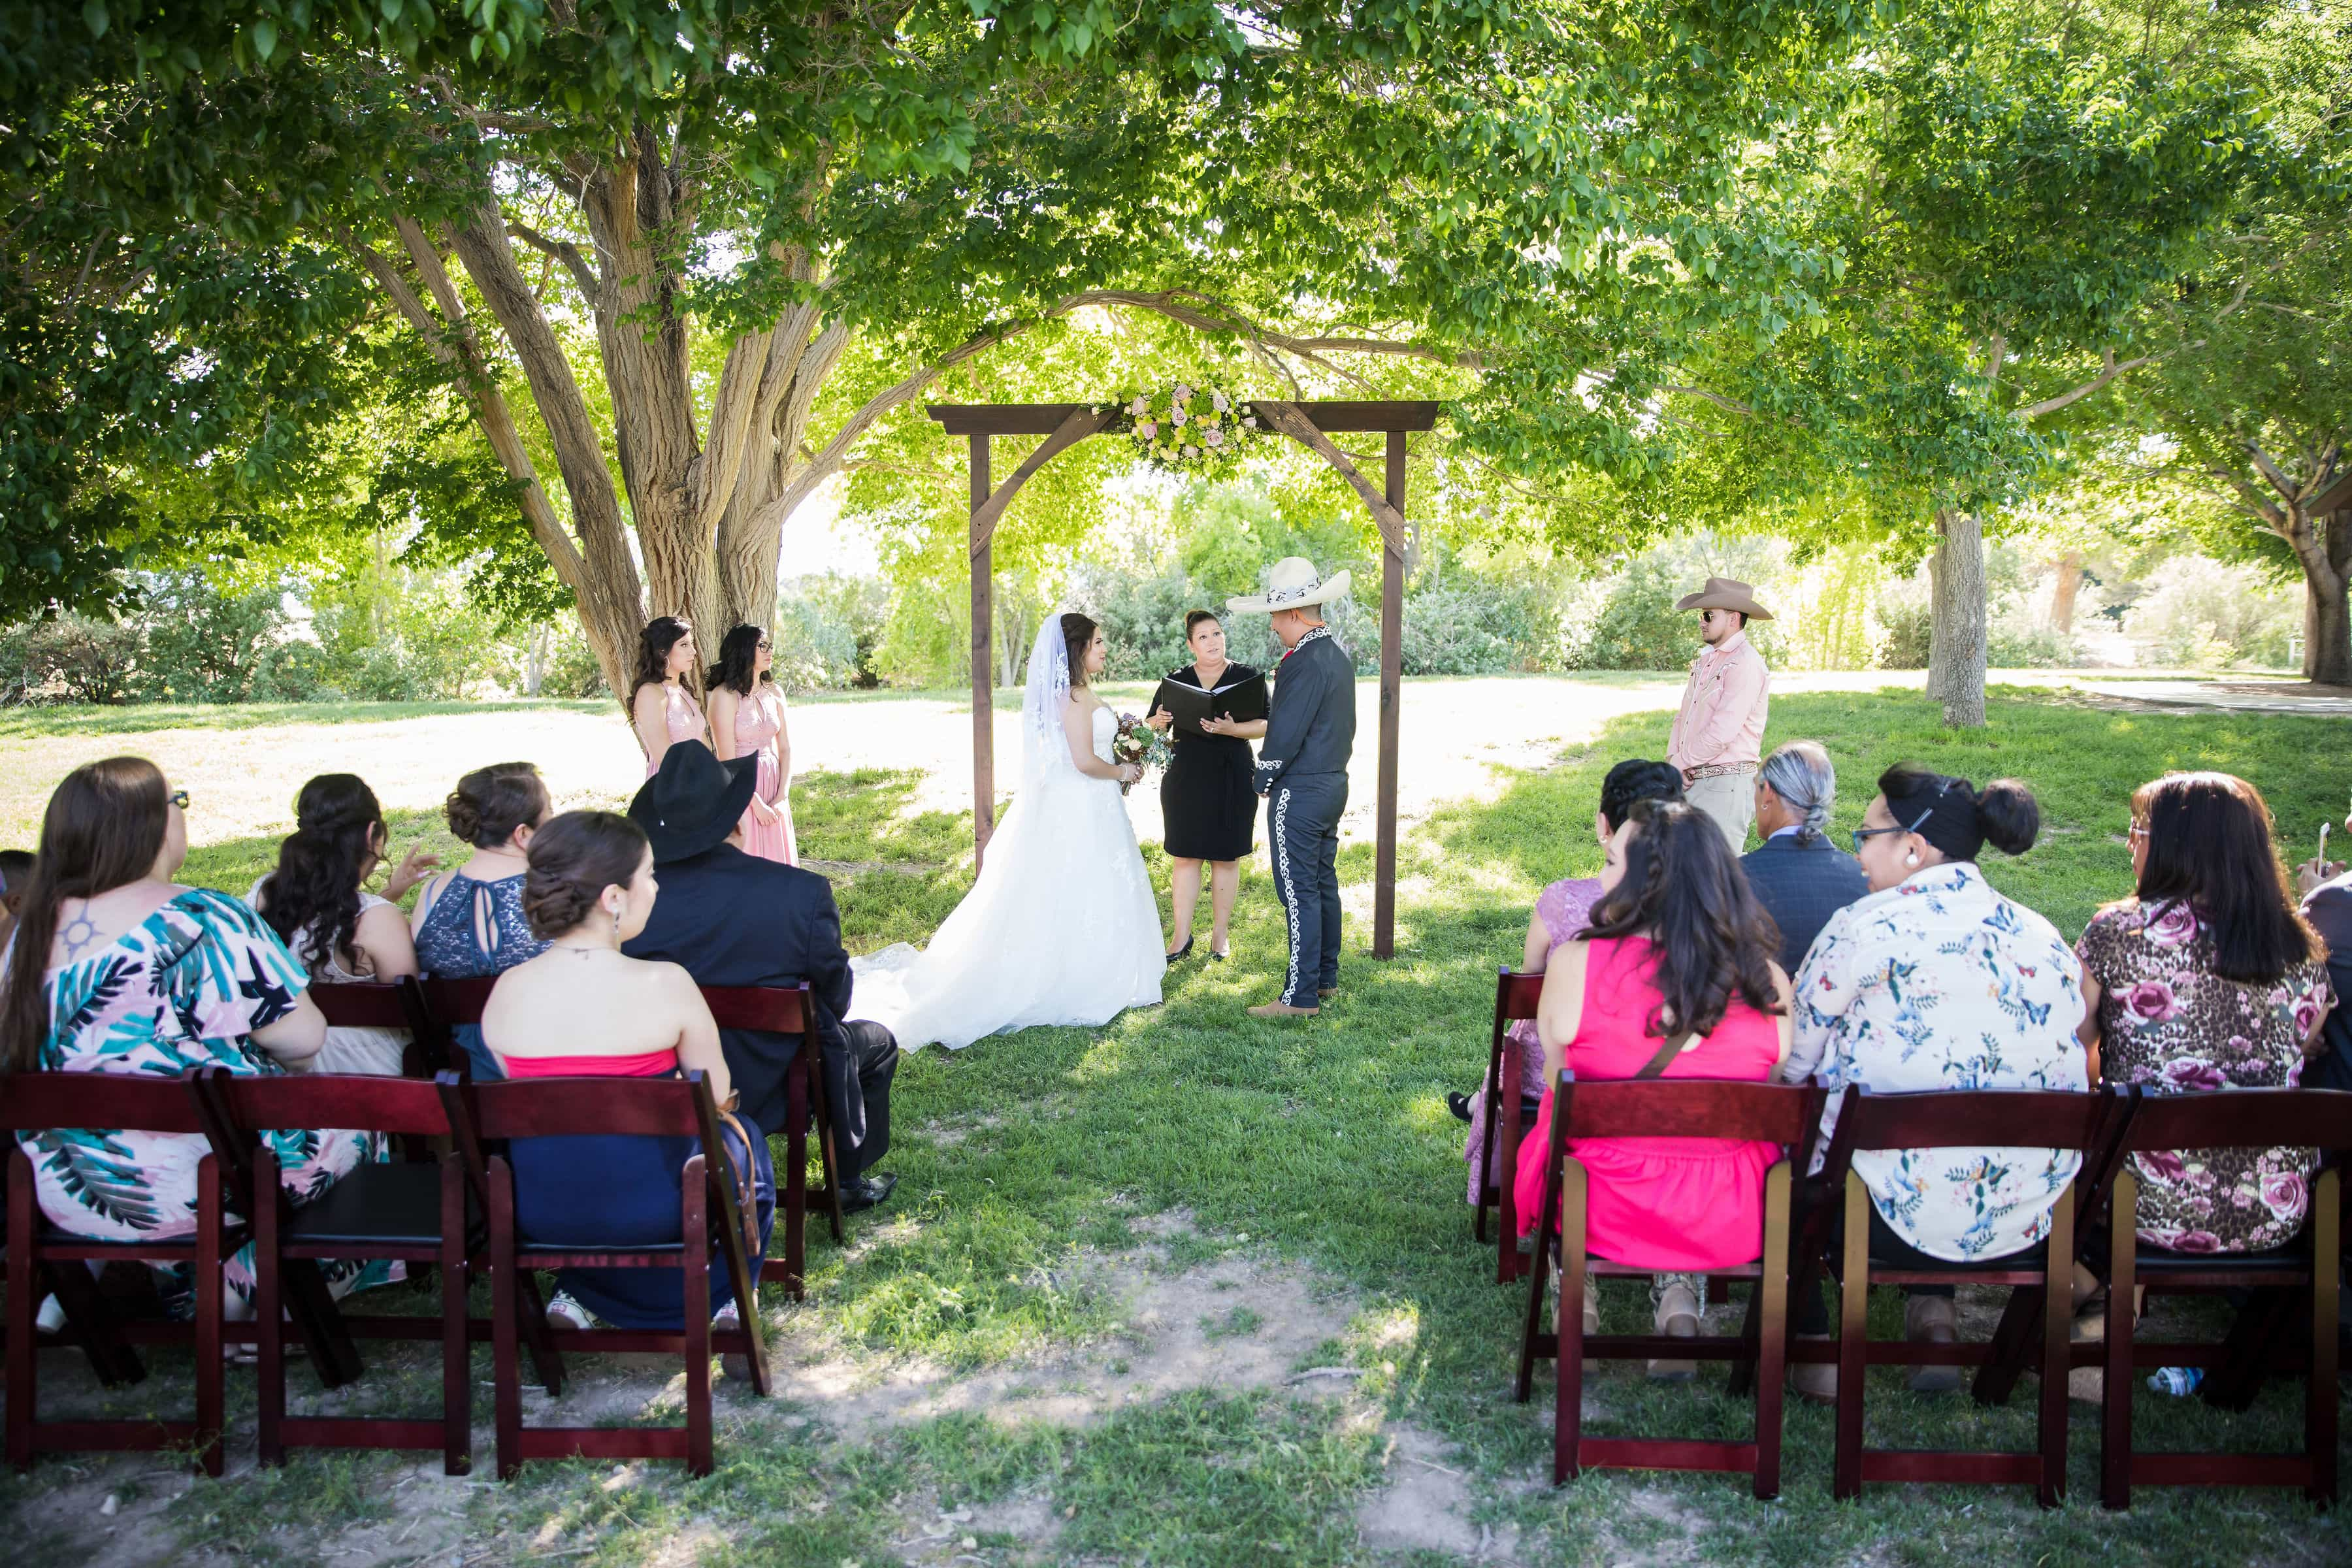 Bride, groom and guests at a Las Vegas wedding in Floyd Lamb Park.